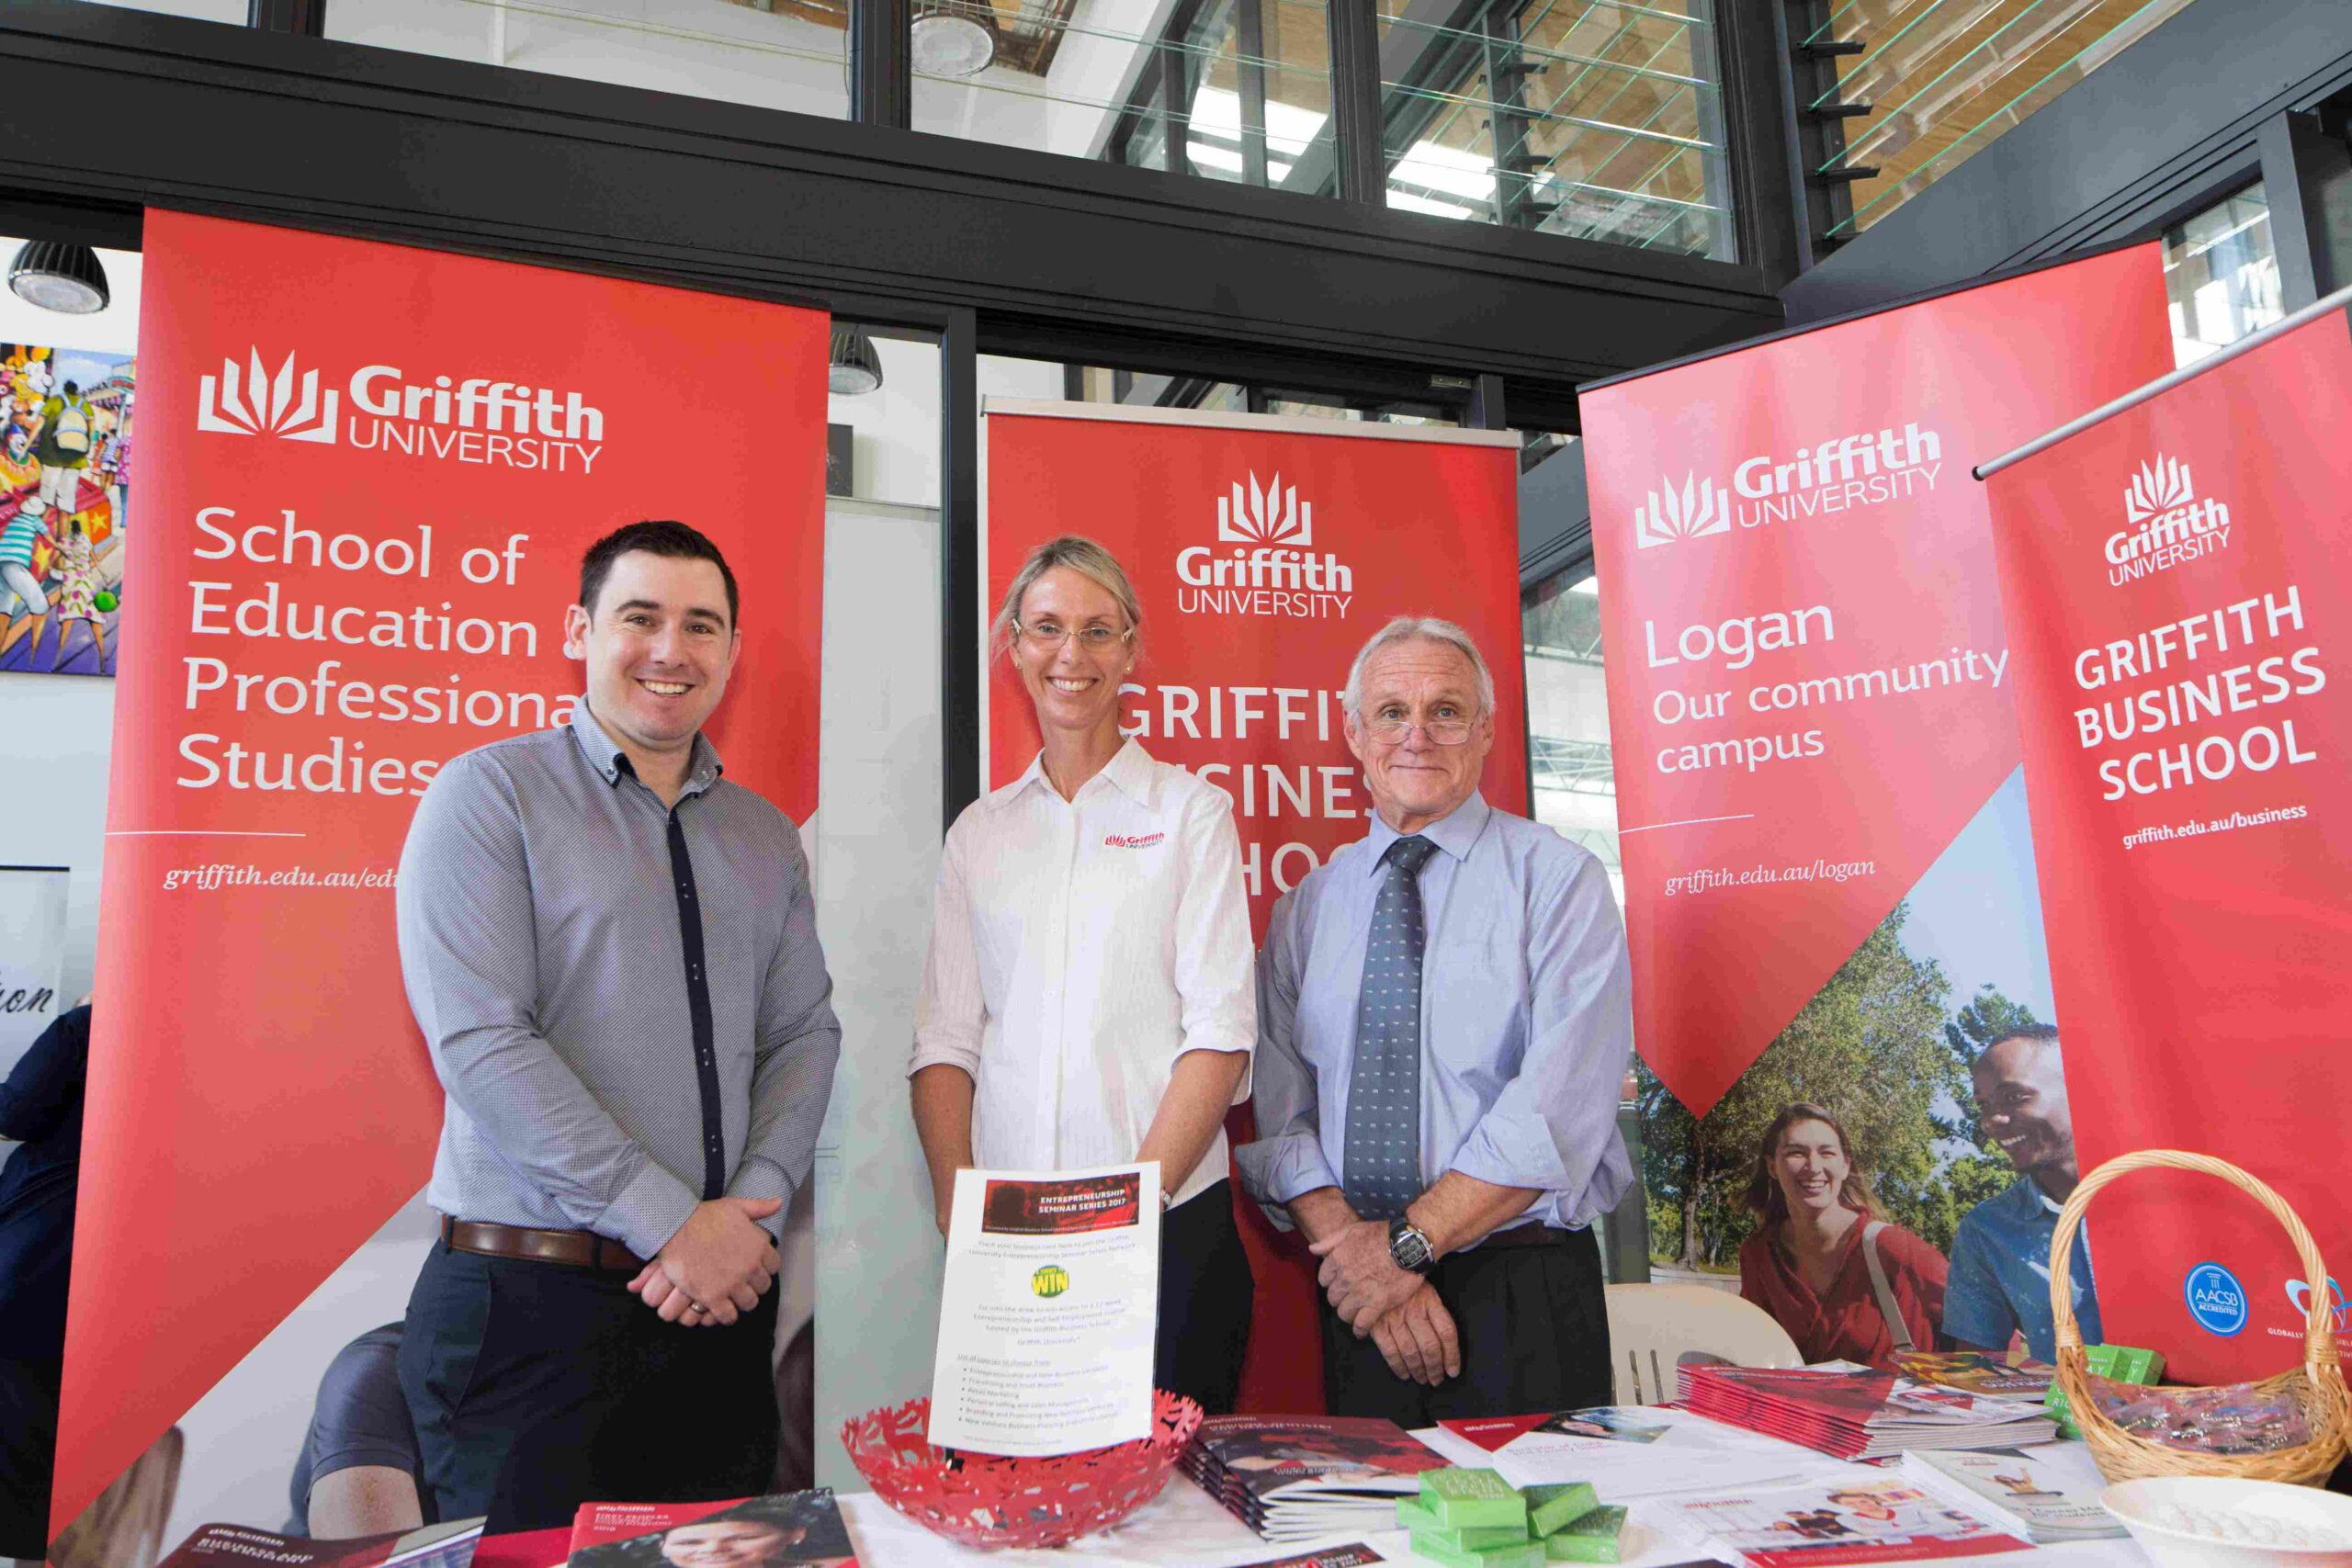 Small Business Expos - Griffith University